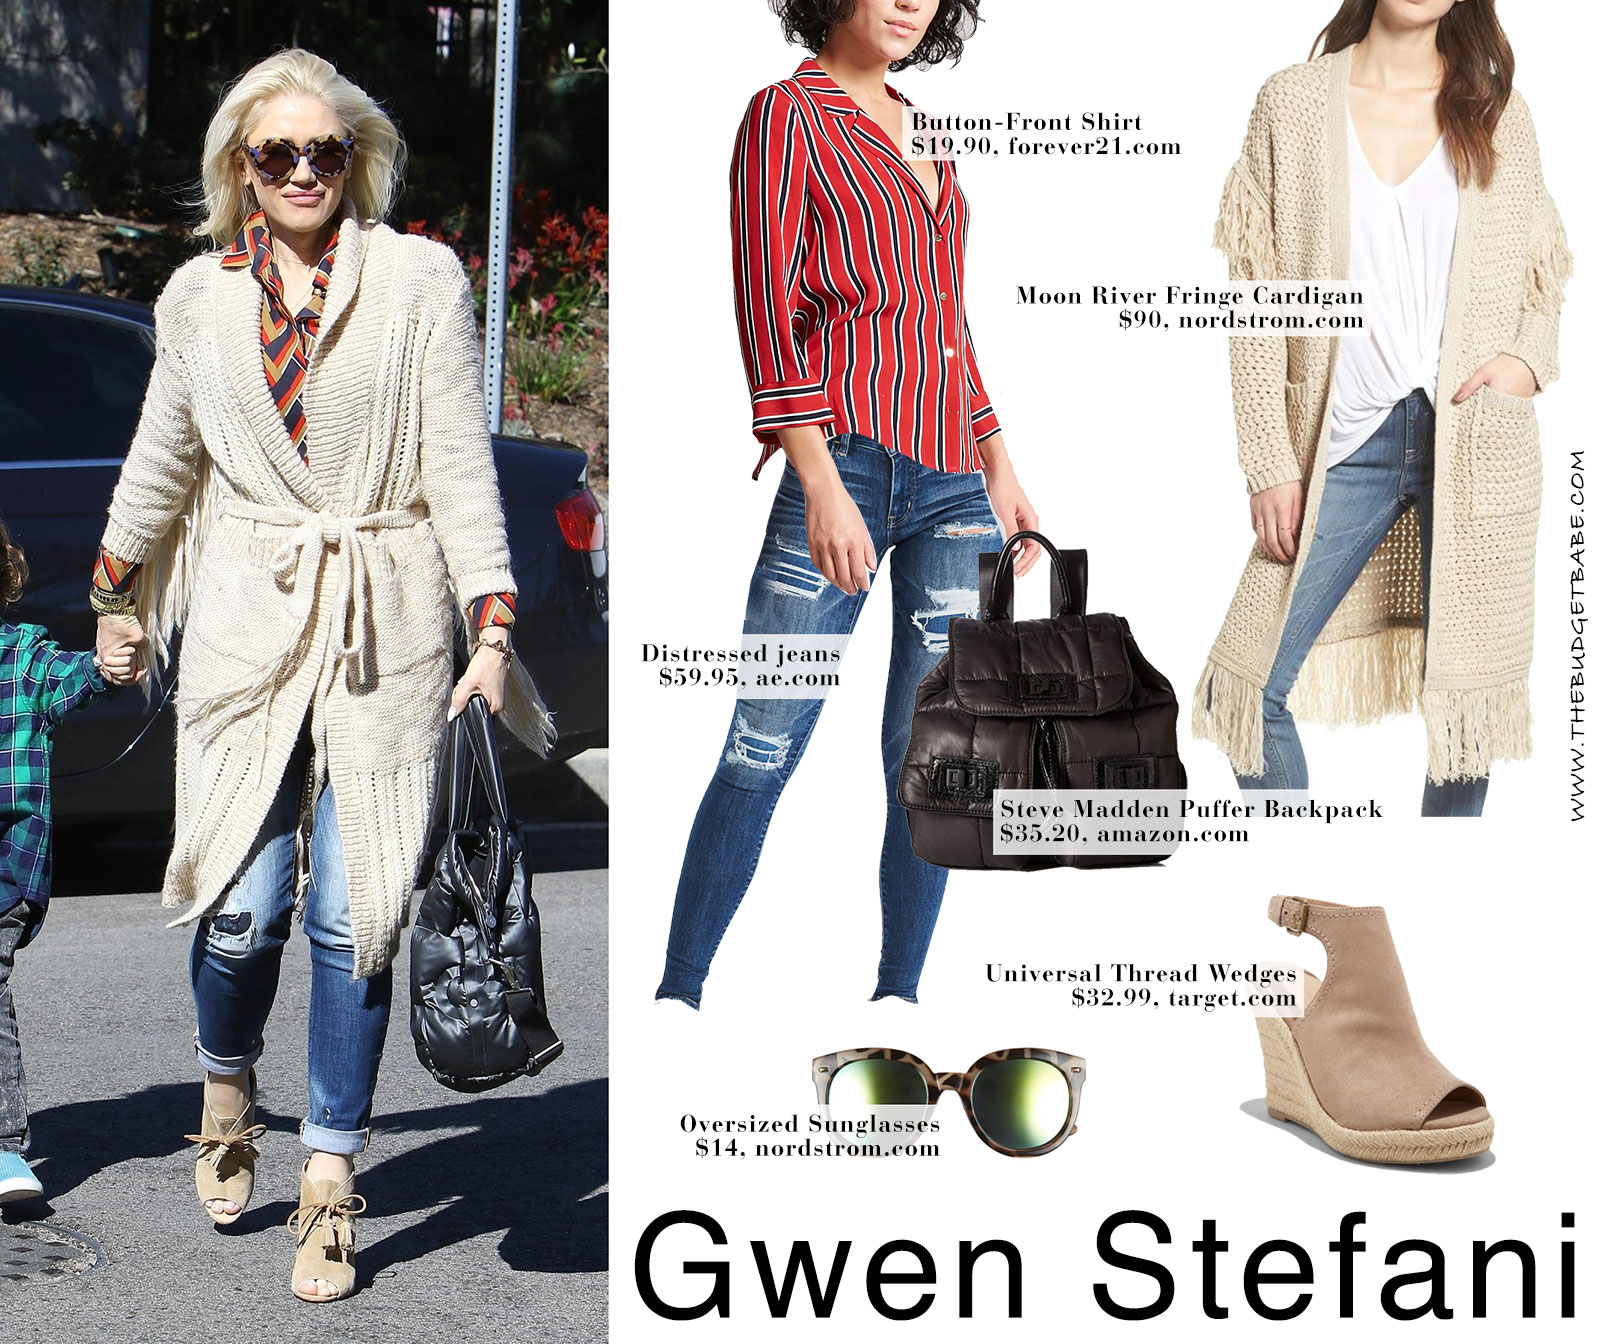 Gwen Stefani's fringe cardigan and wedge booties look for less